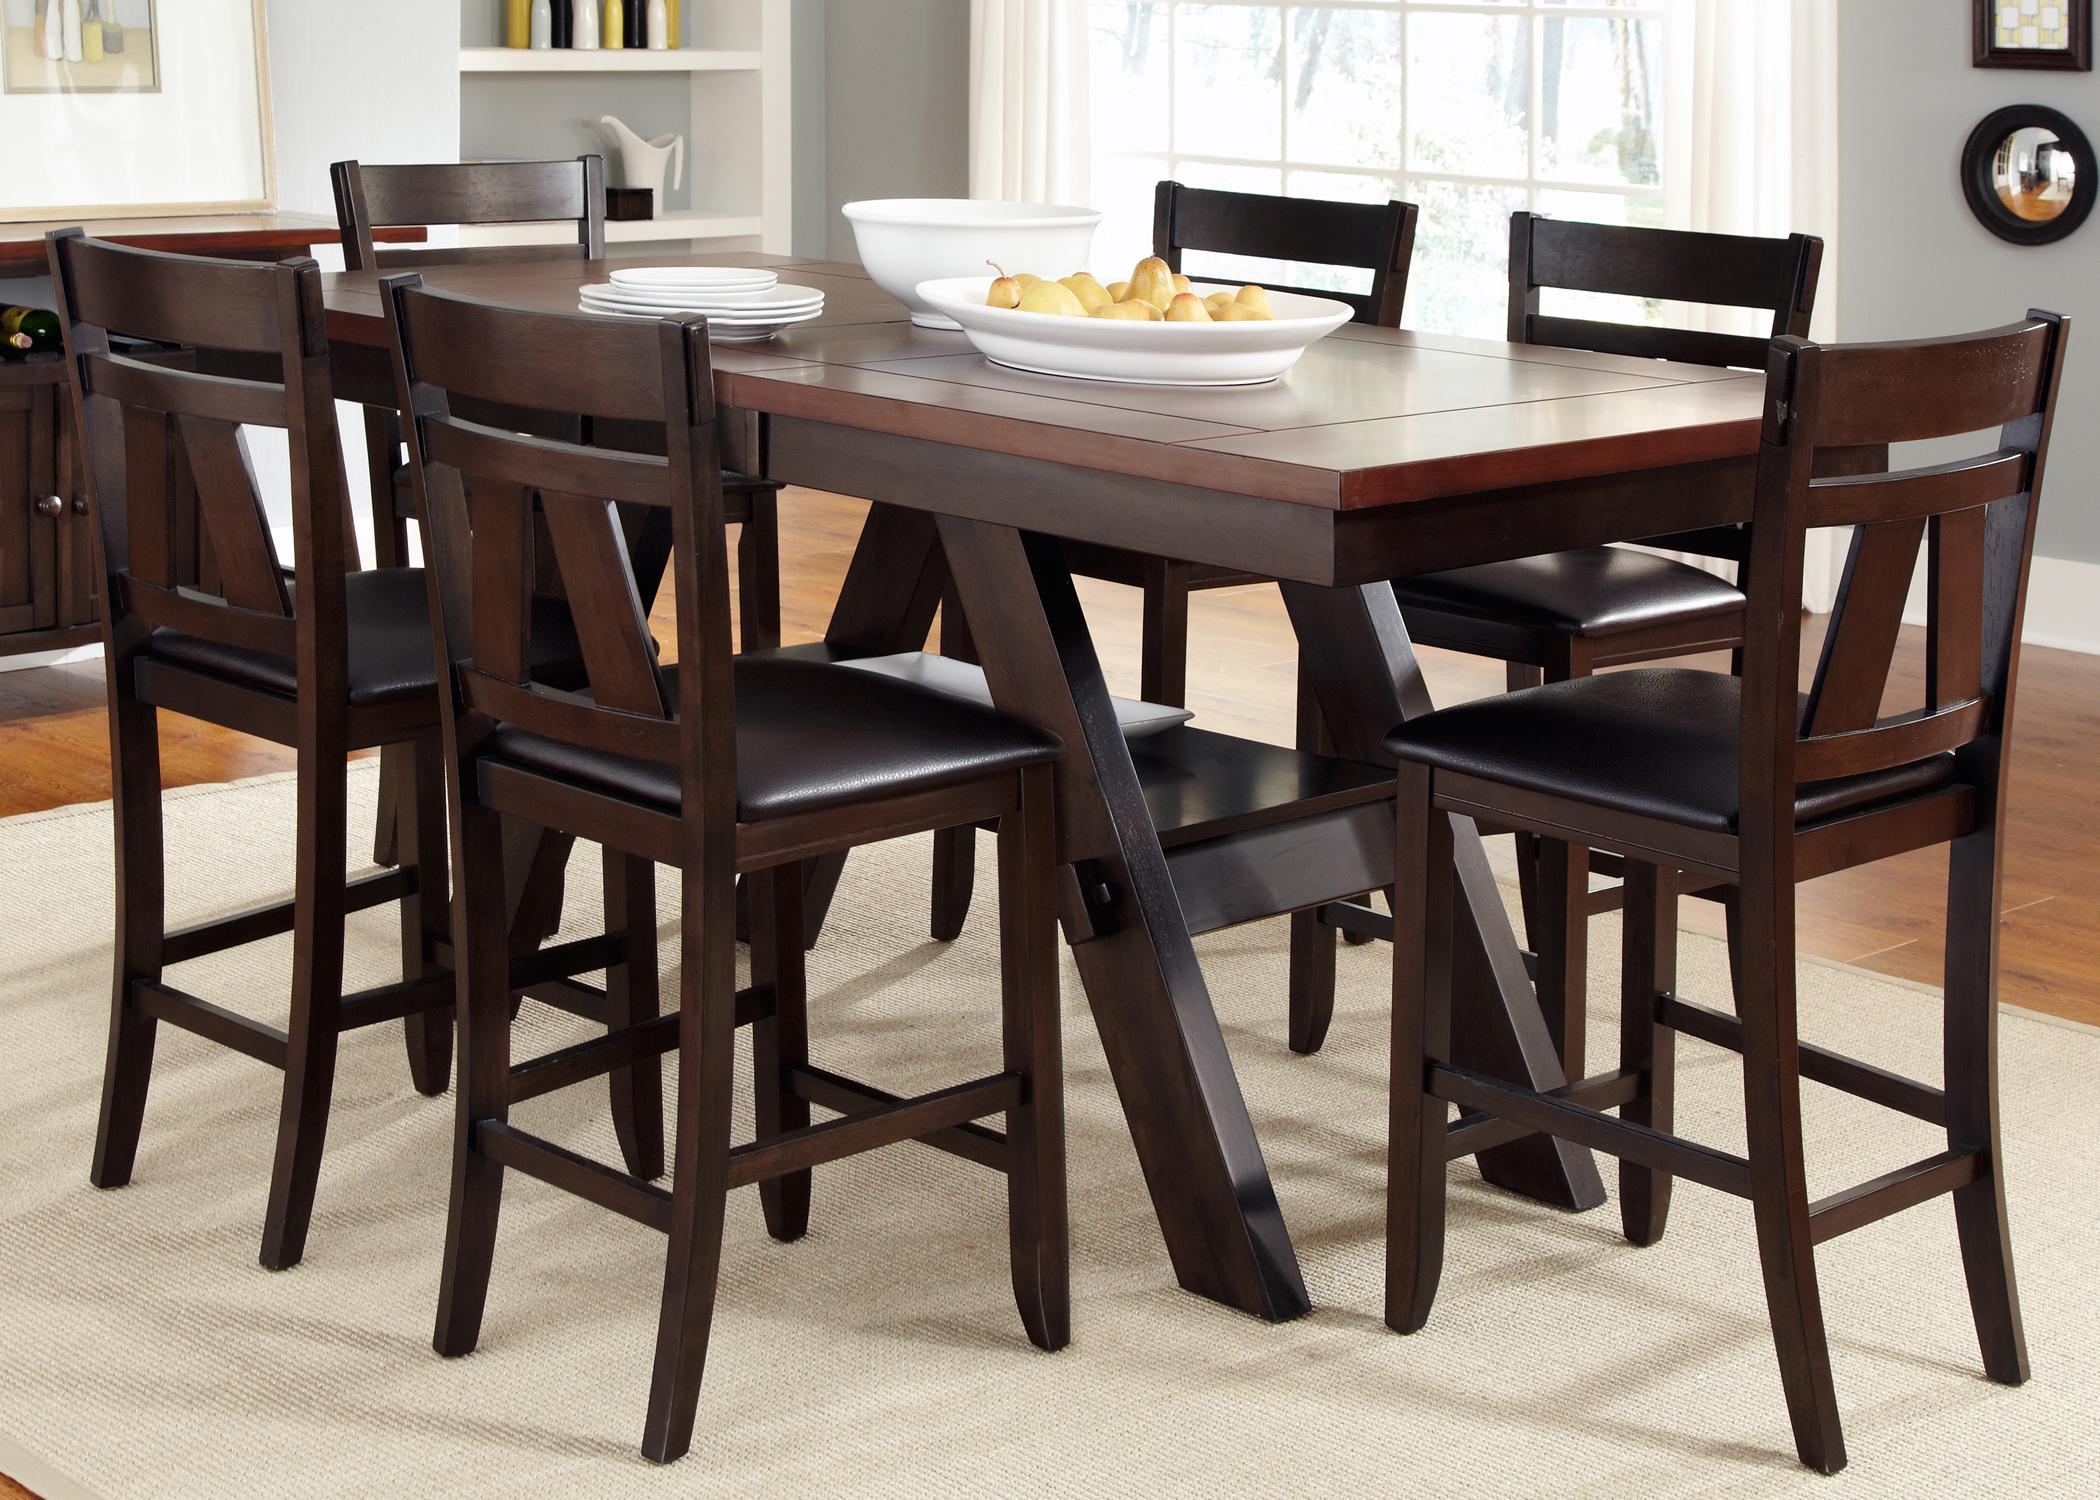 7 Piece Trestle Gathering Table With Counter Height Chairs Set